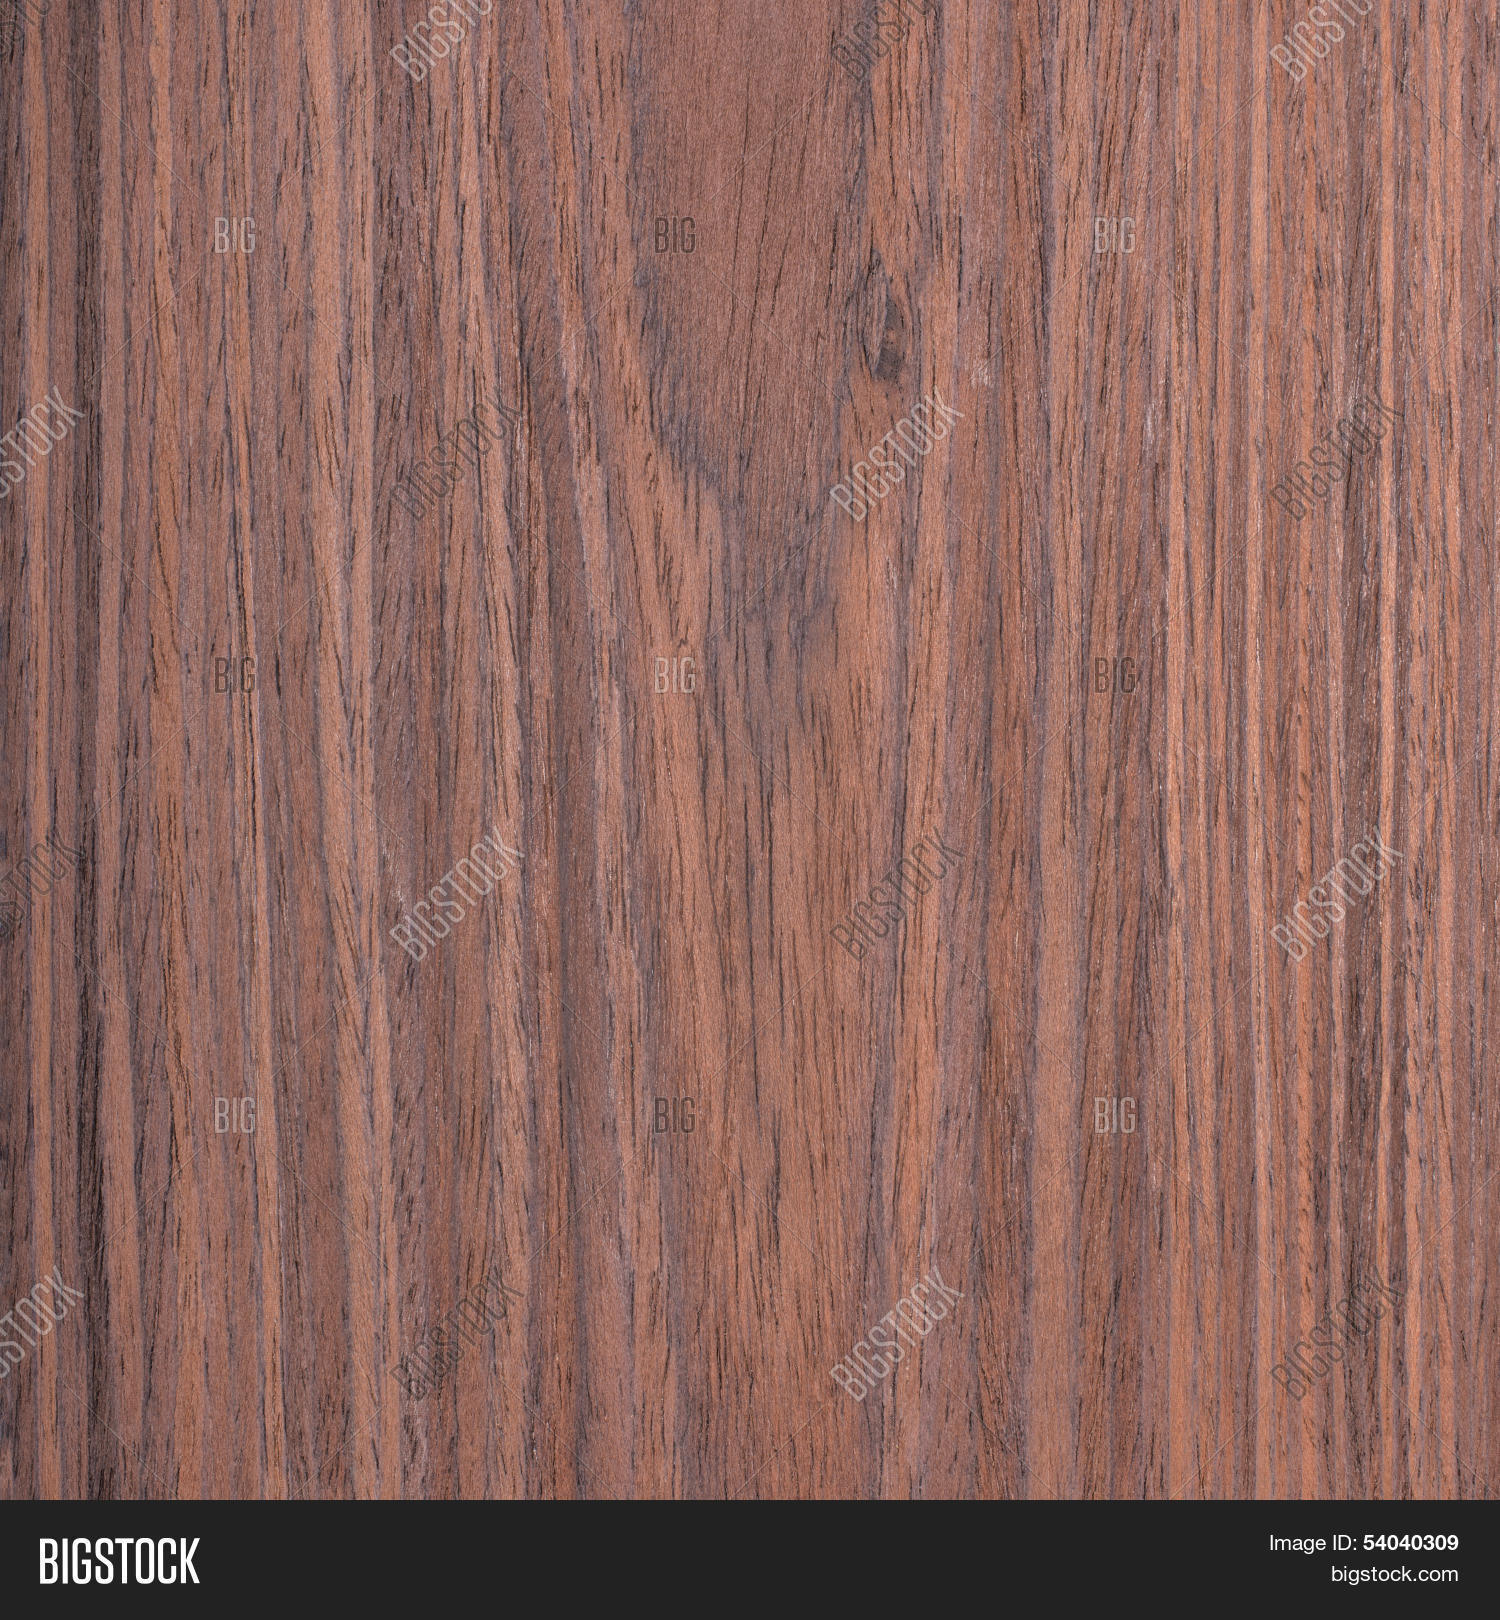 Rosewood Wood Texture Image Photo Free Trial Bigstock